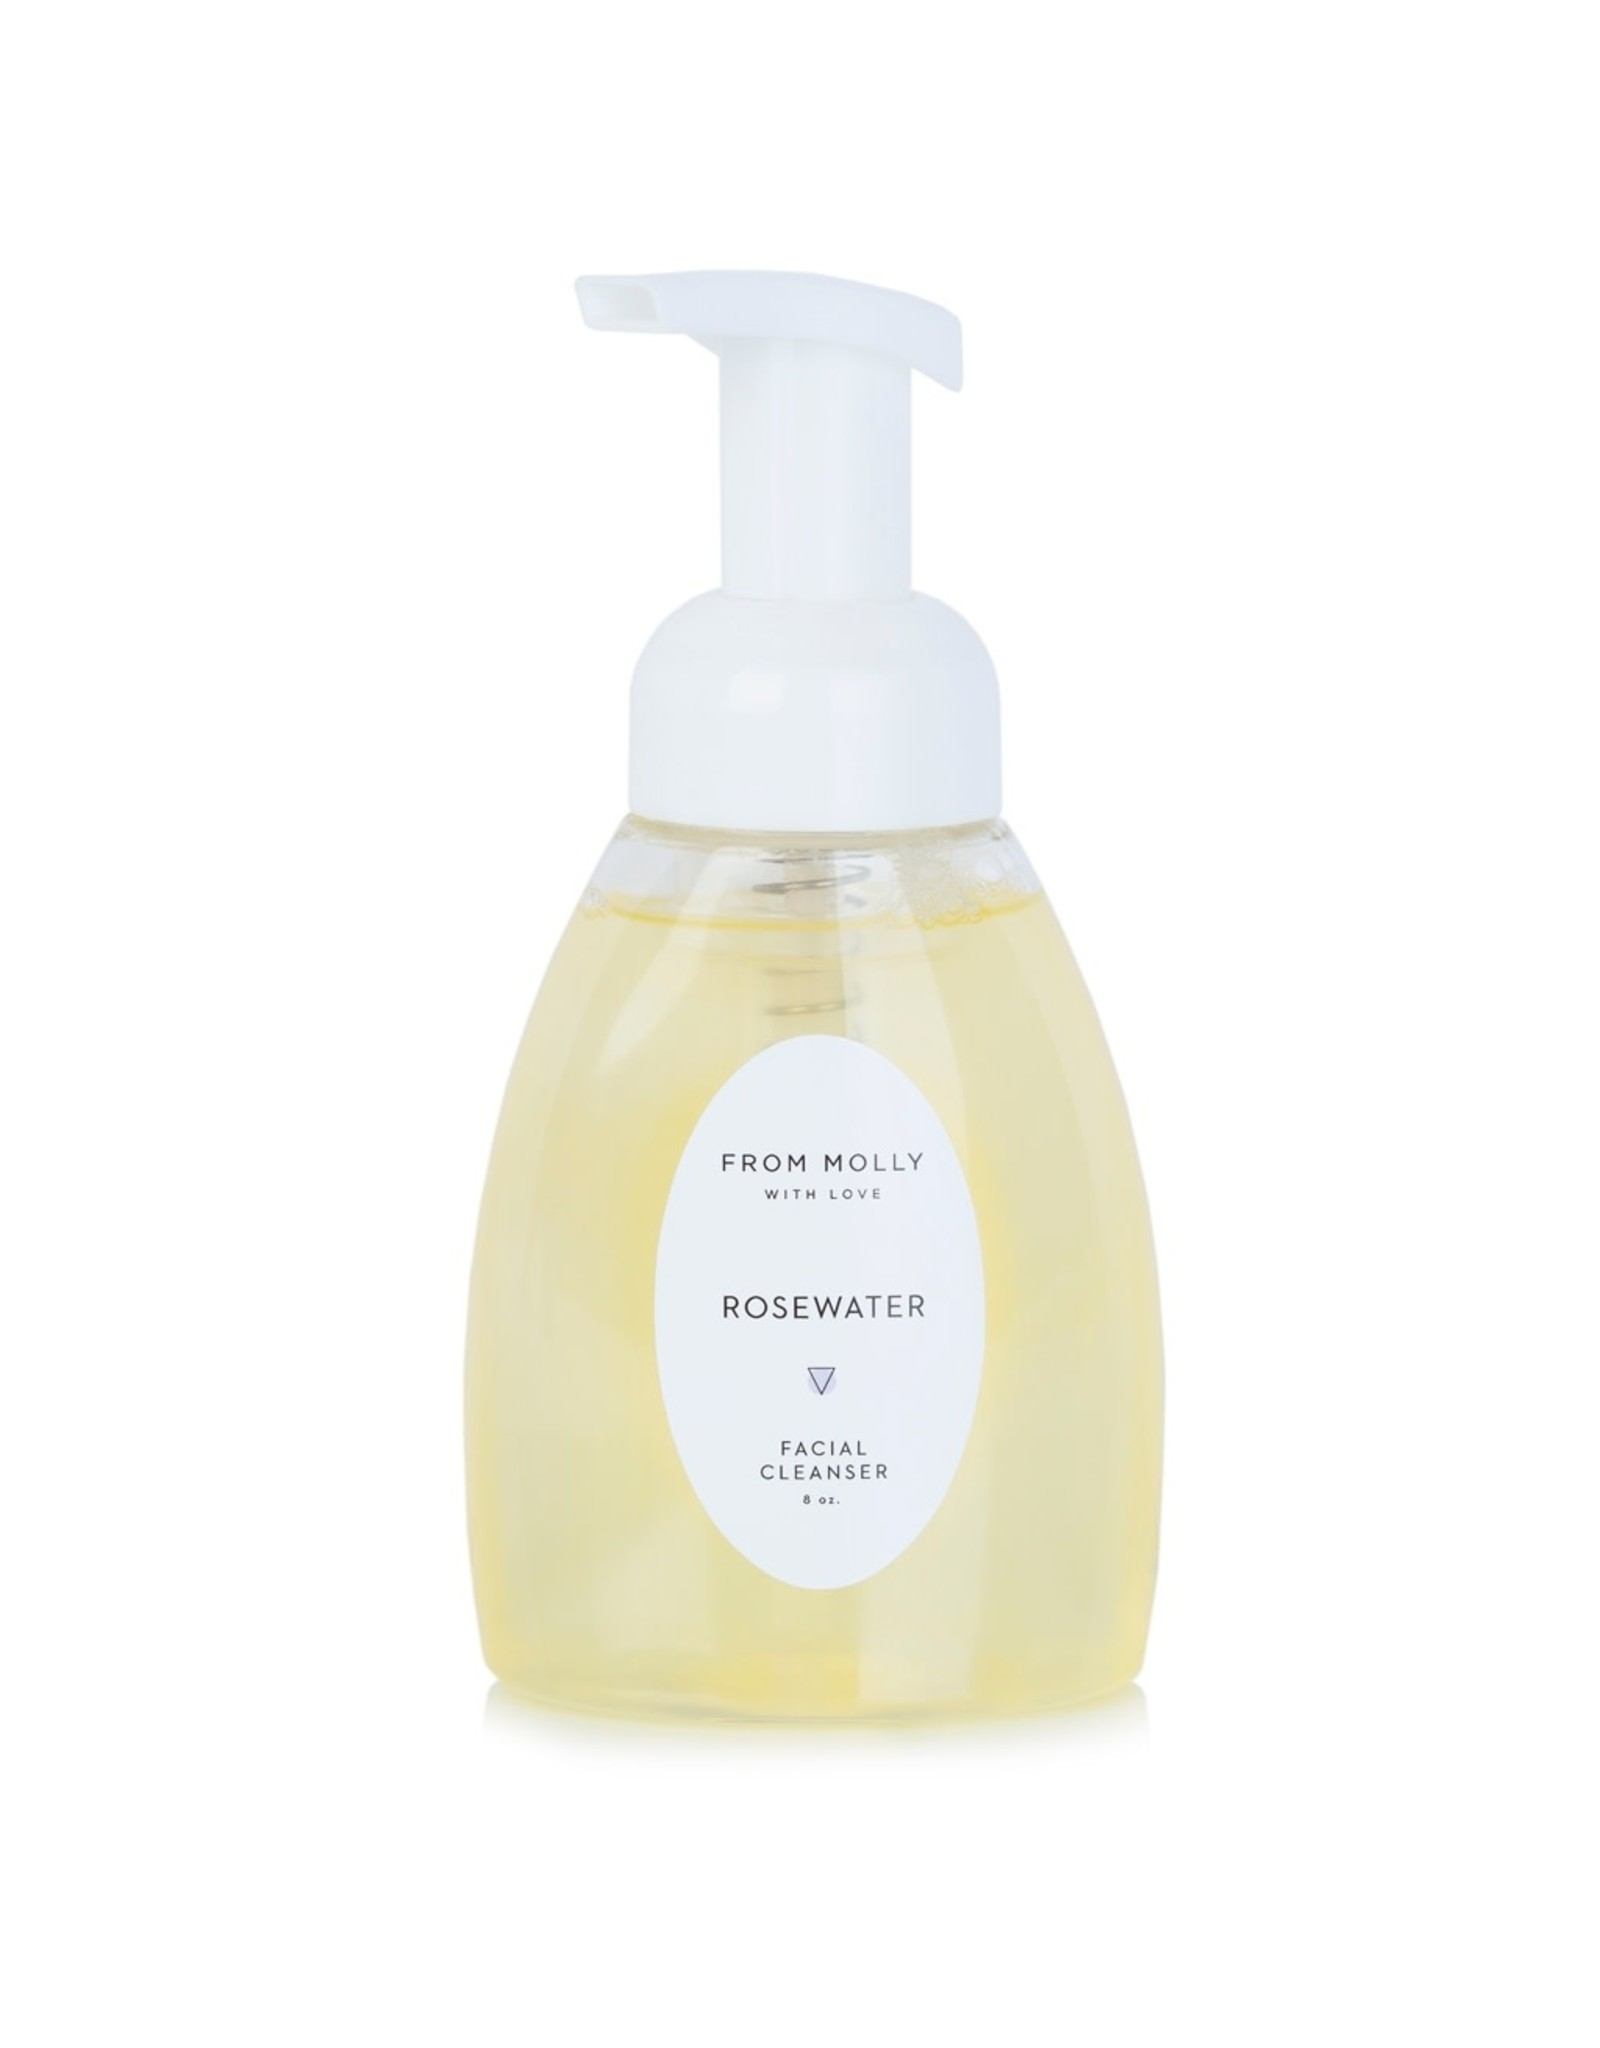 From Molly With Love Rosewater Facial Cleanser - 8 oz.